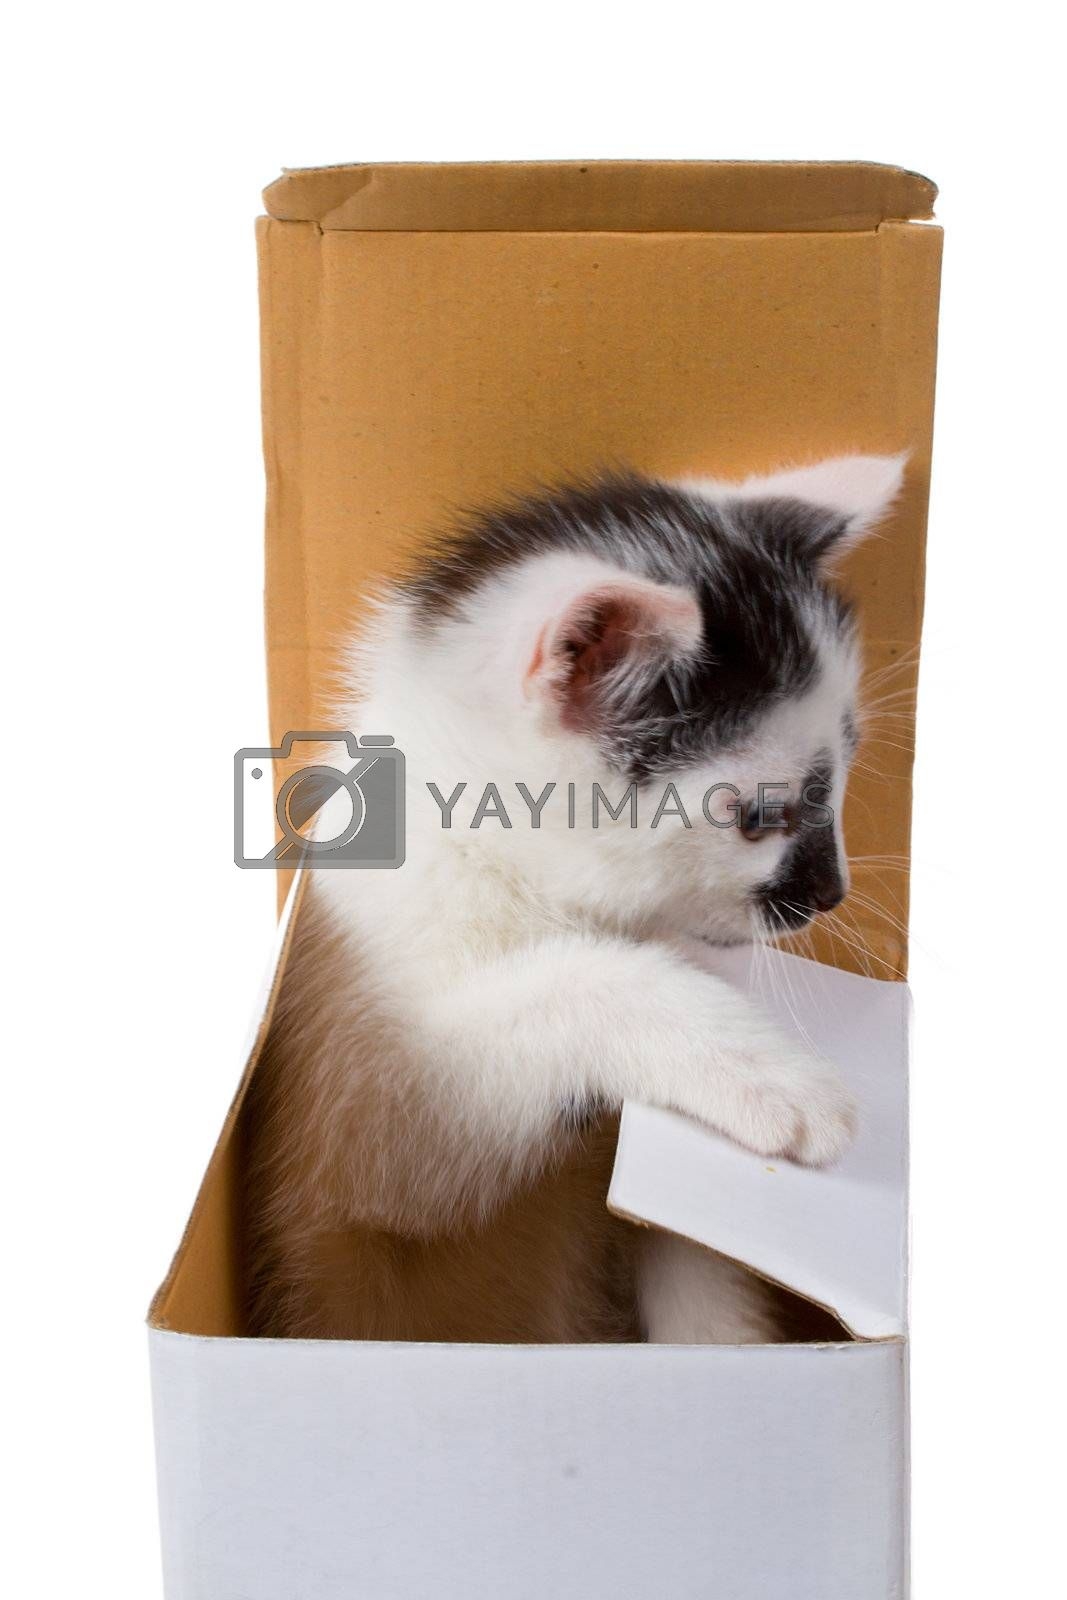 close-up small kitten on box as gift, isolated on white